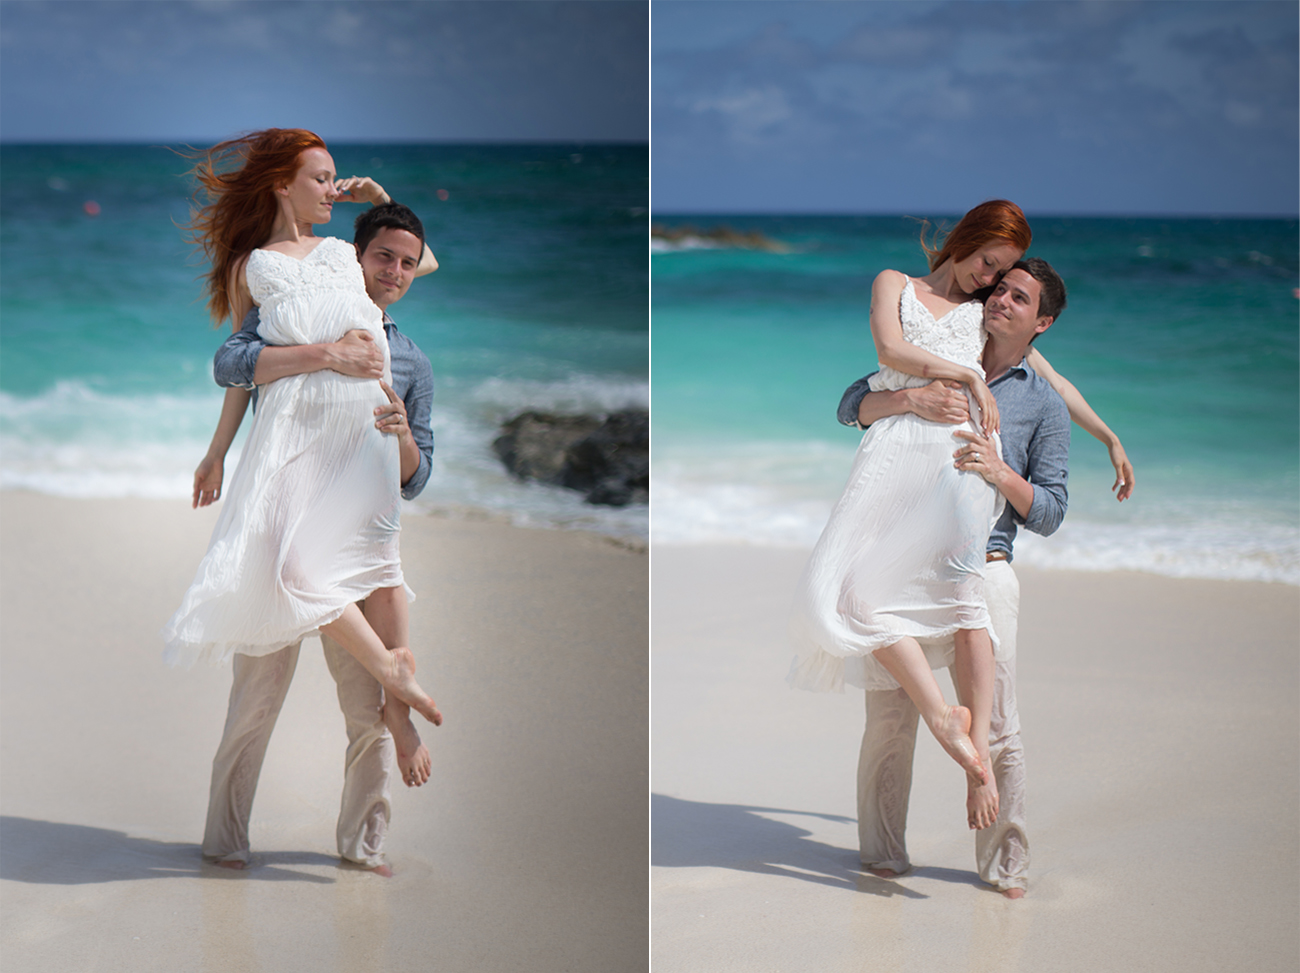 bahamas artistic wedding photos